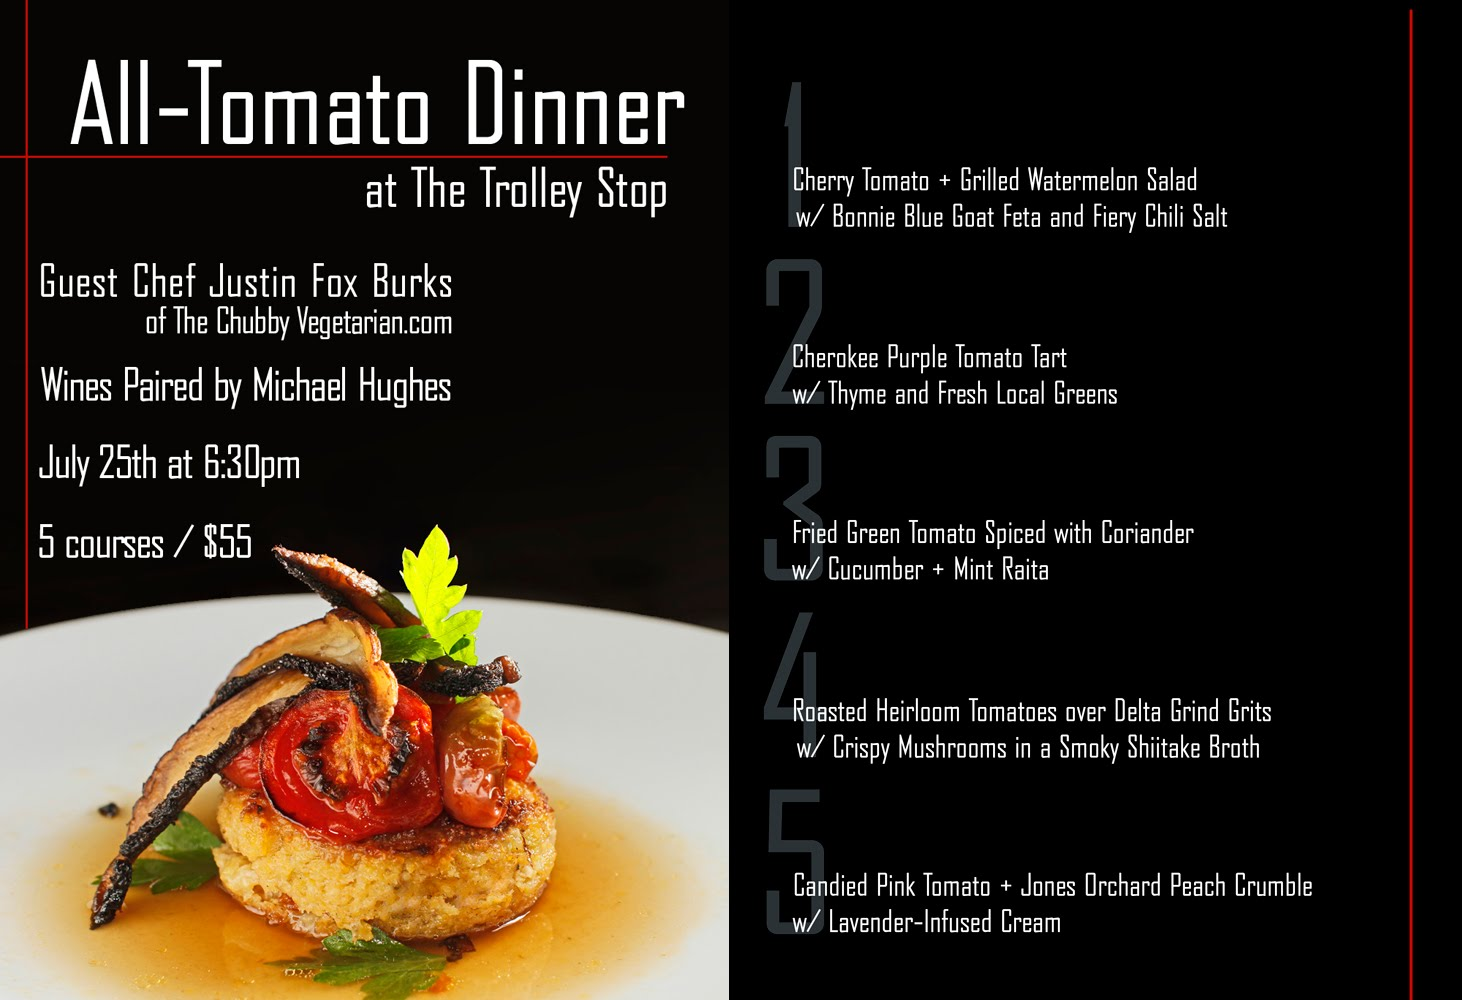 All tomato dinner tickets on